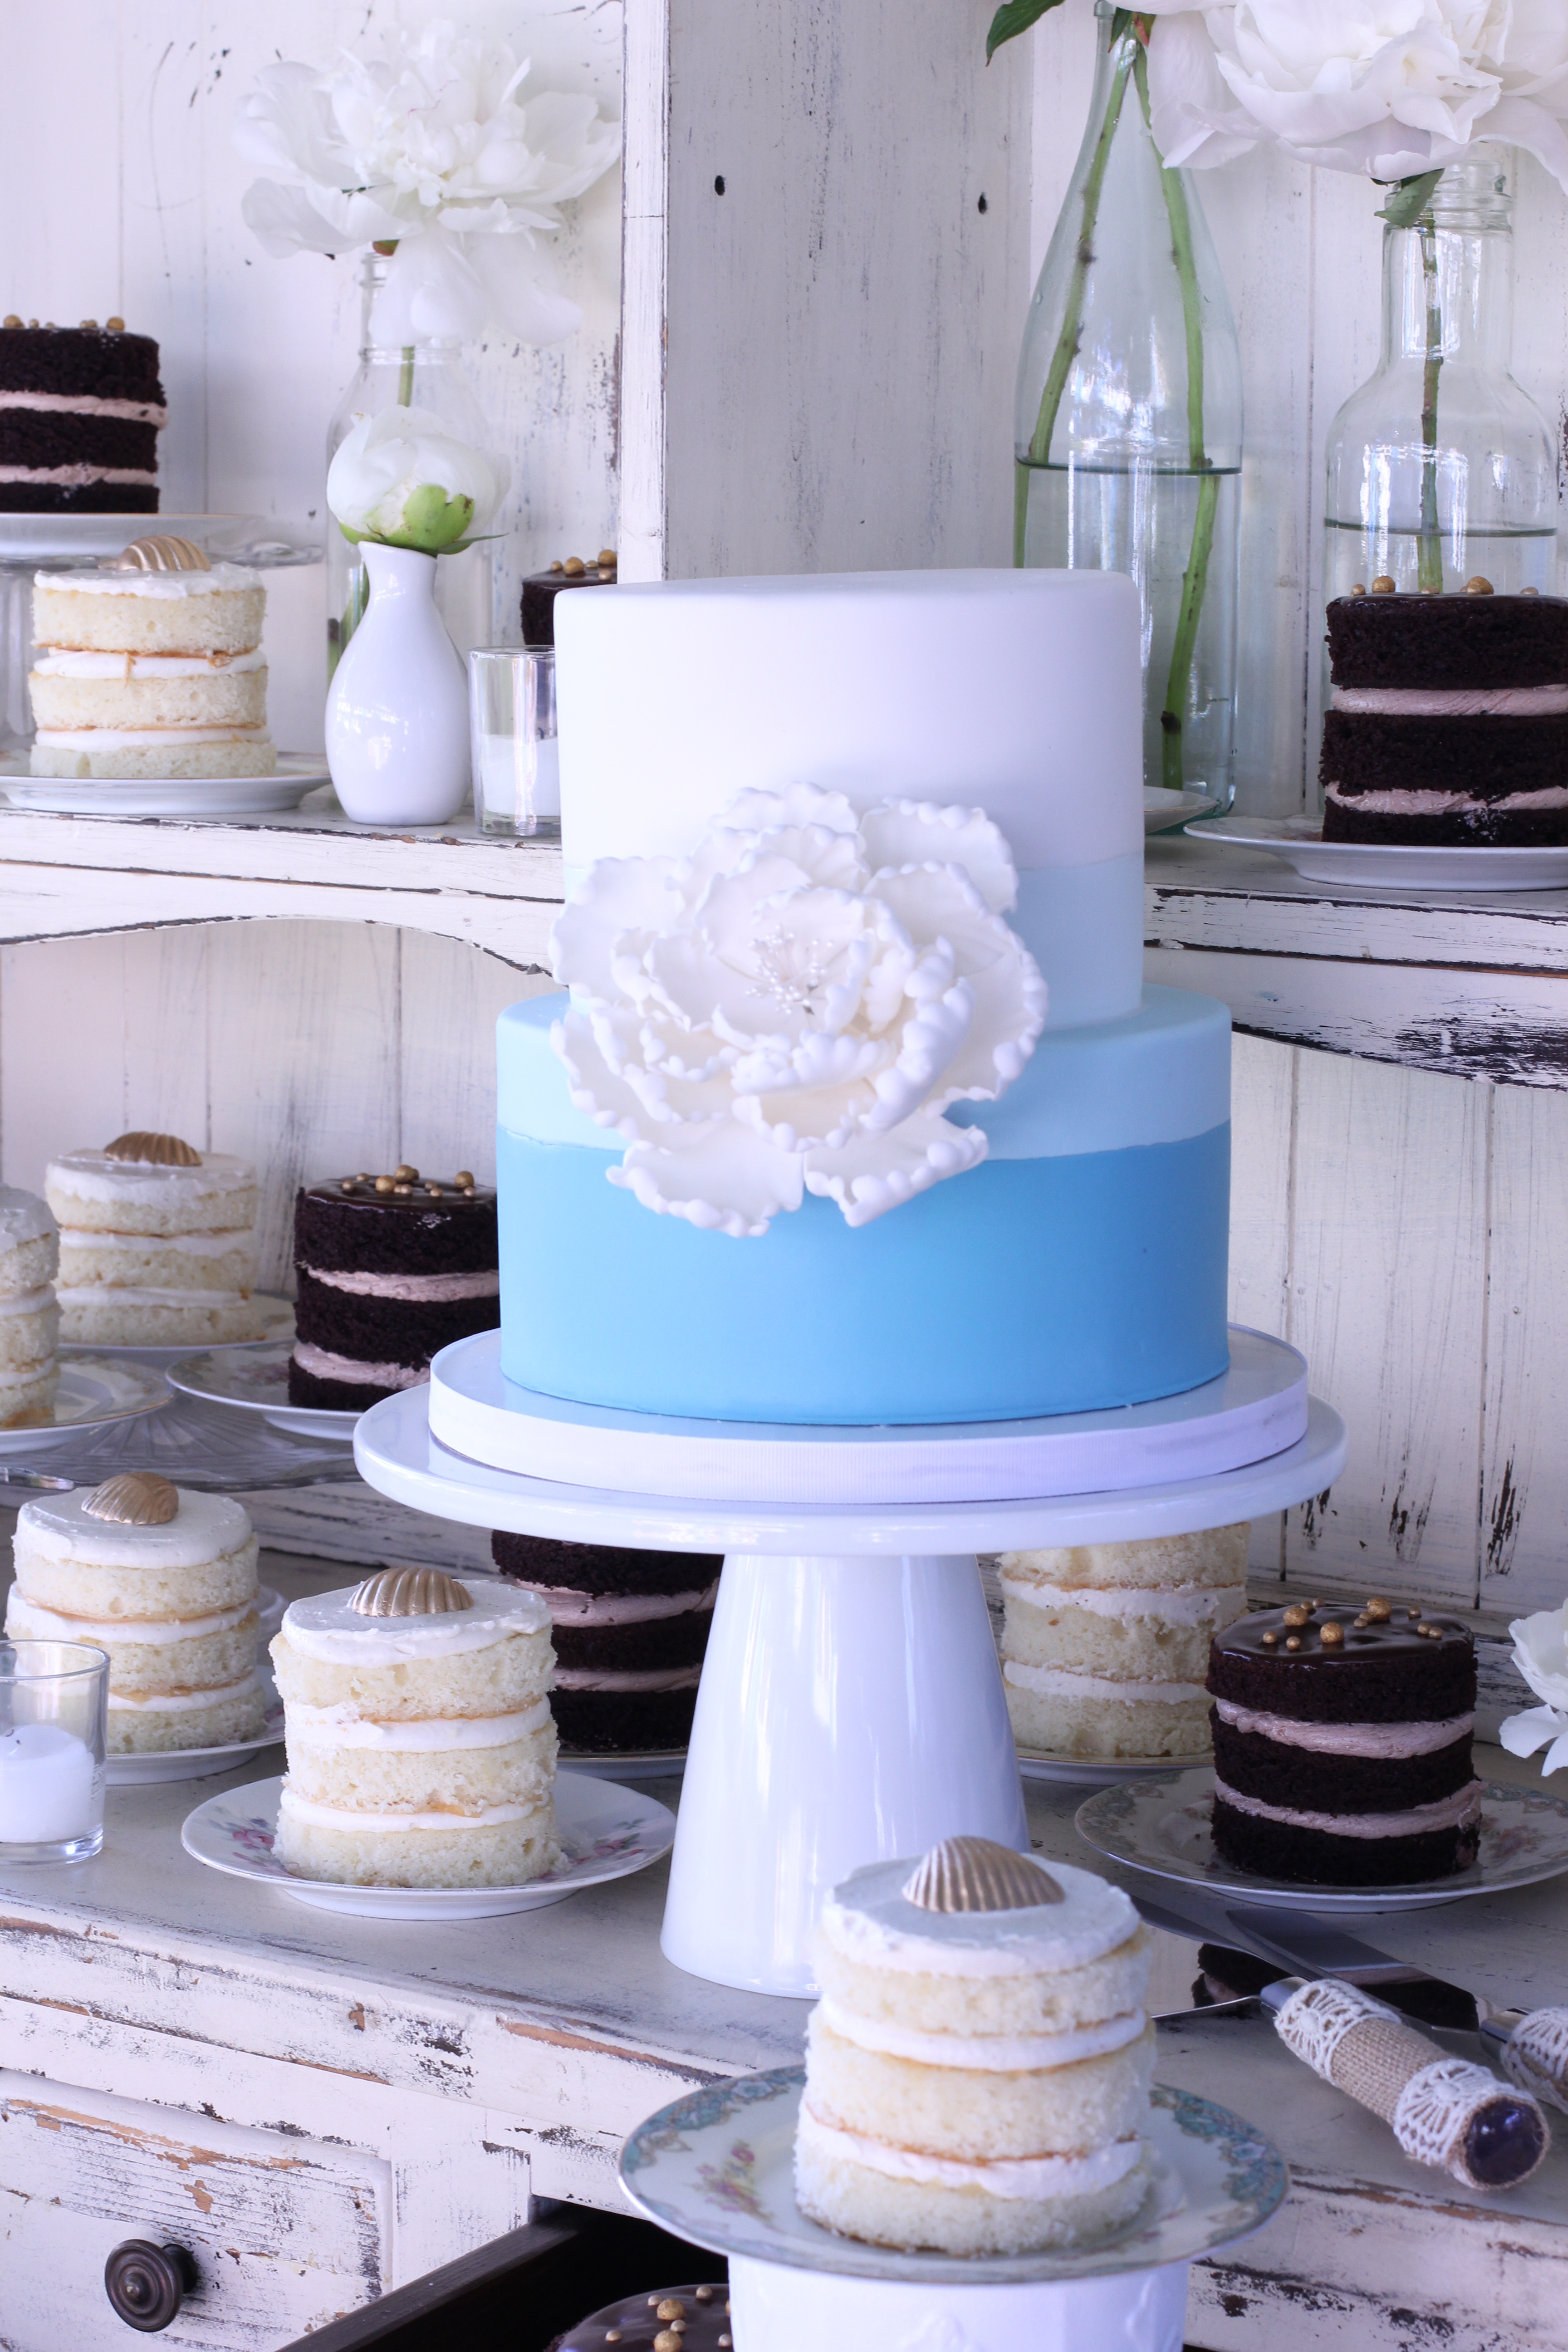 Mini Naked Cakes and Blue Ombre Cake